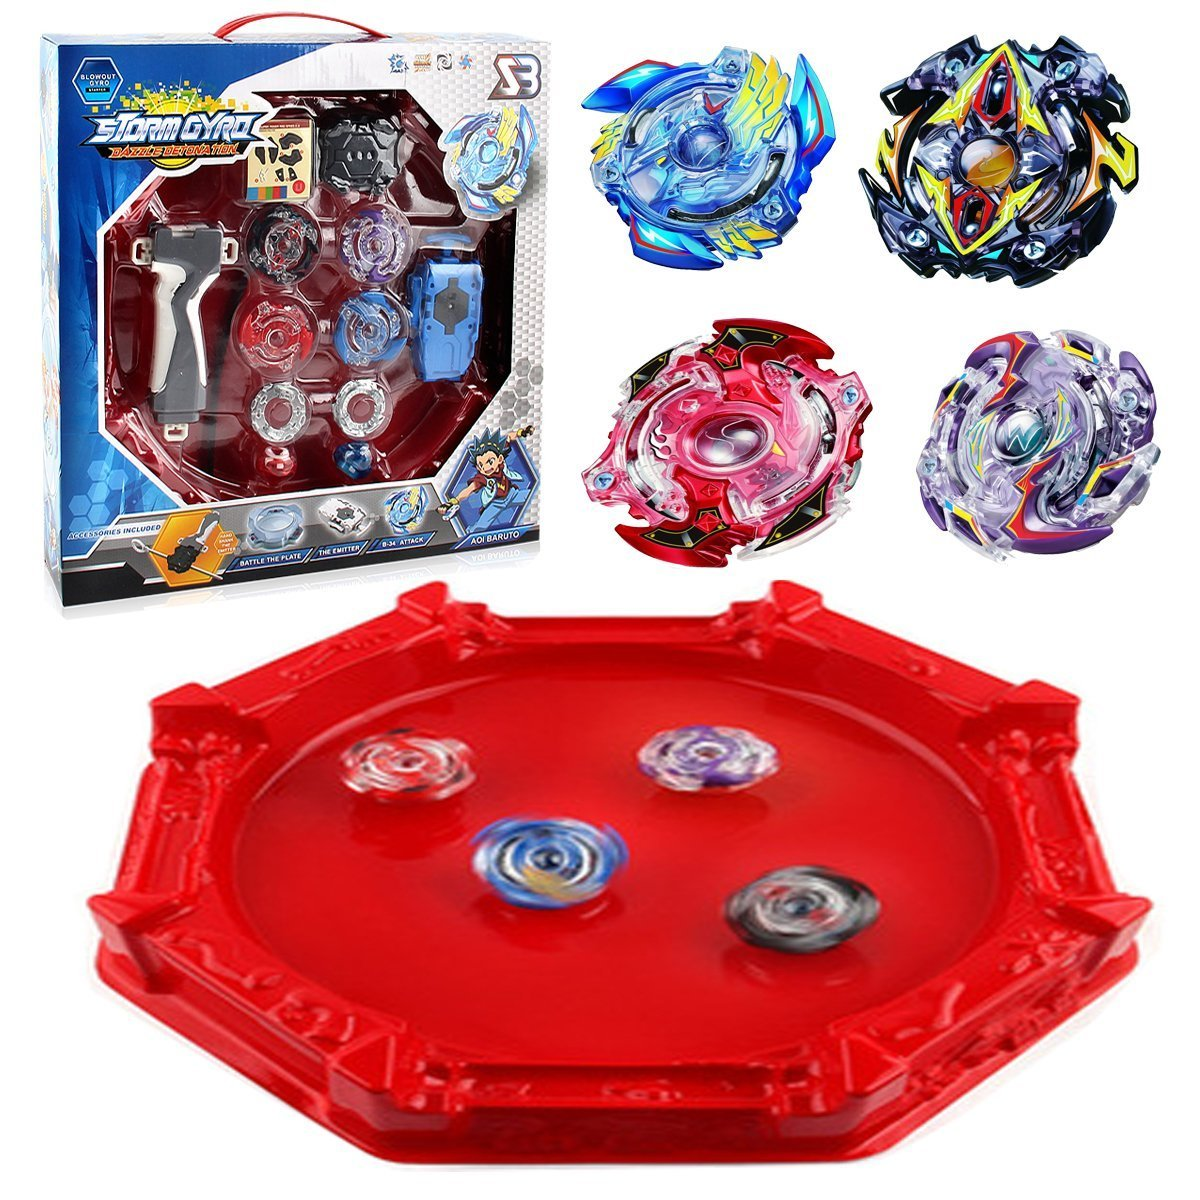 IOTC Bey Blade Burst Evolution Star Storm Battle Set and Arena Included, Multi